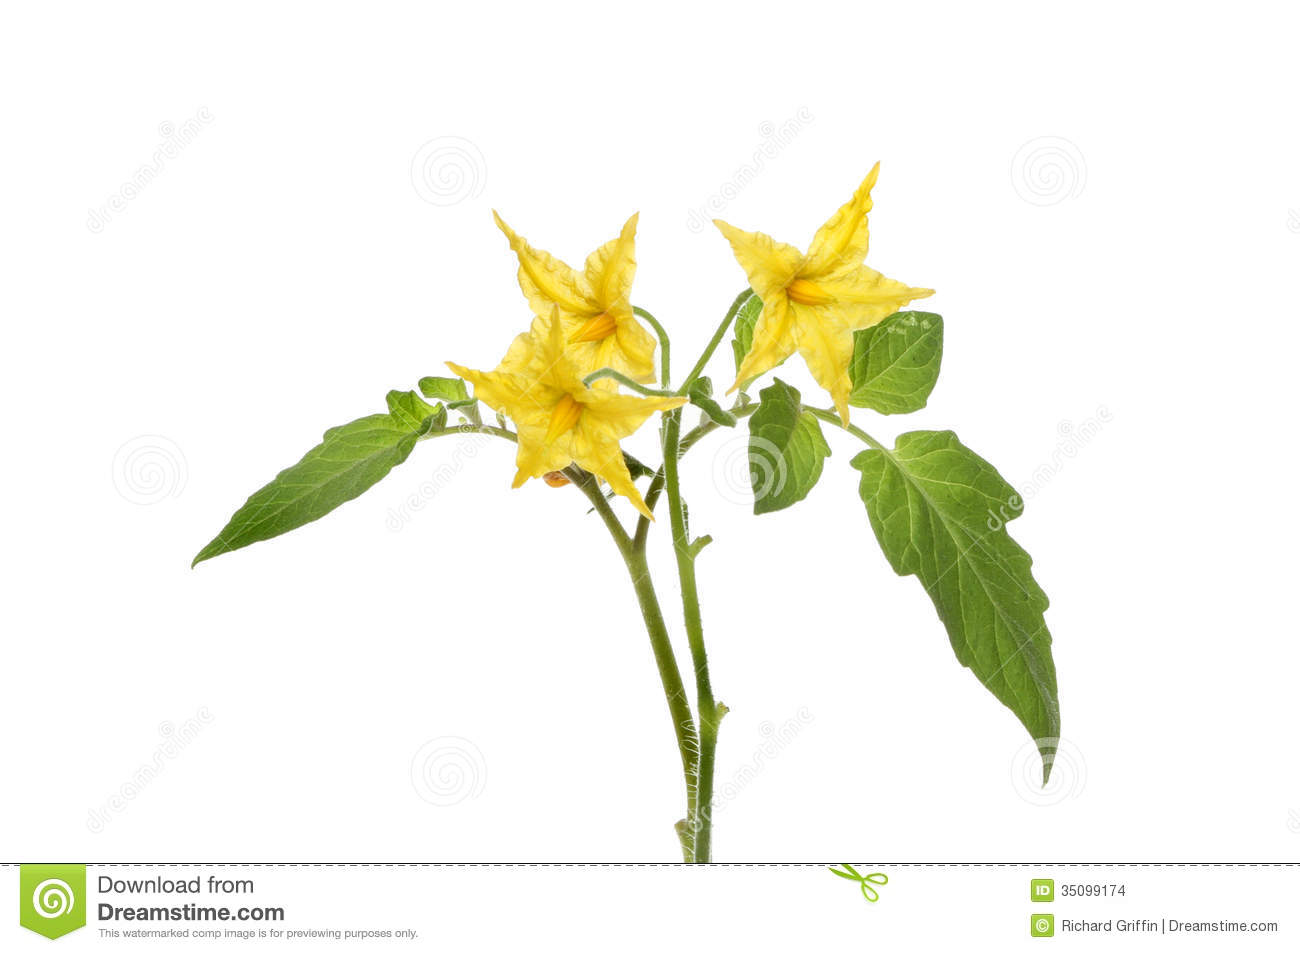 Tomato flowers stock photo image of pentagon yellow 35099174 download comp mightylinksfo